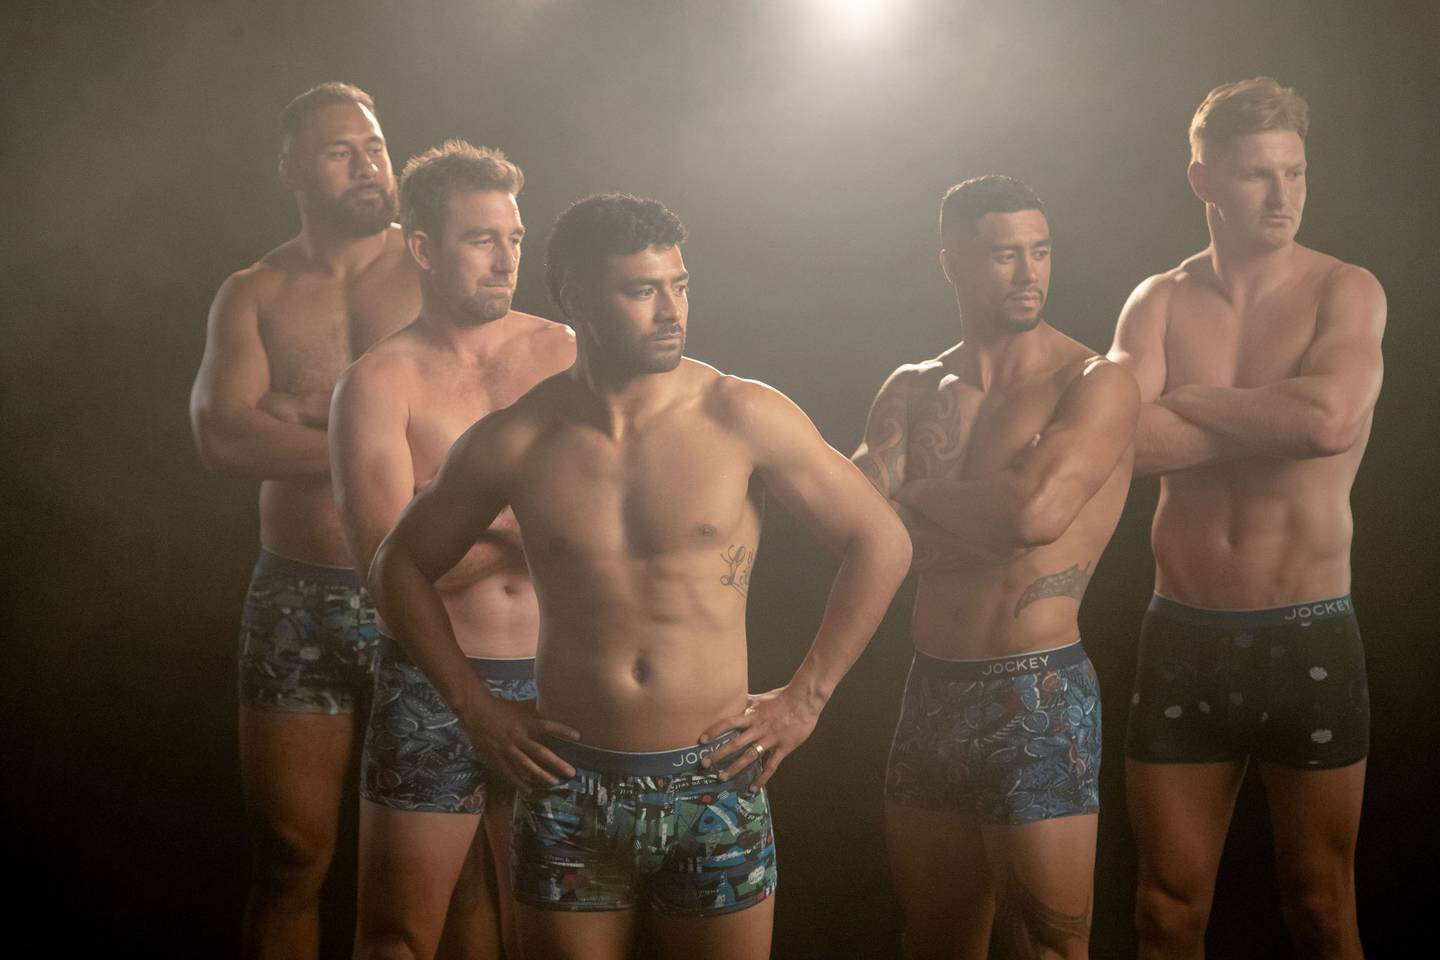 The All Blacks revealed their go-to pose is the classic rugby stance. Photo: Supplied